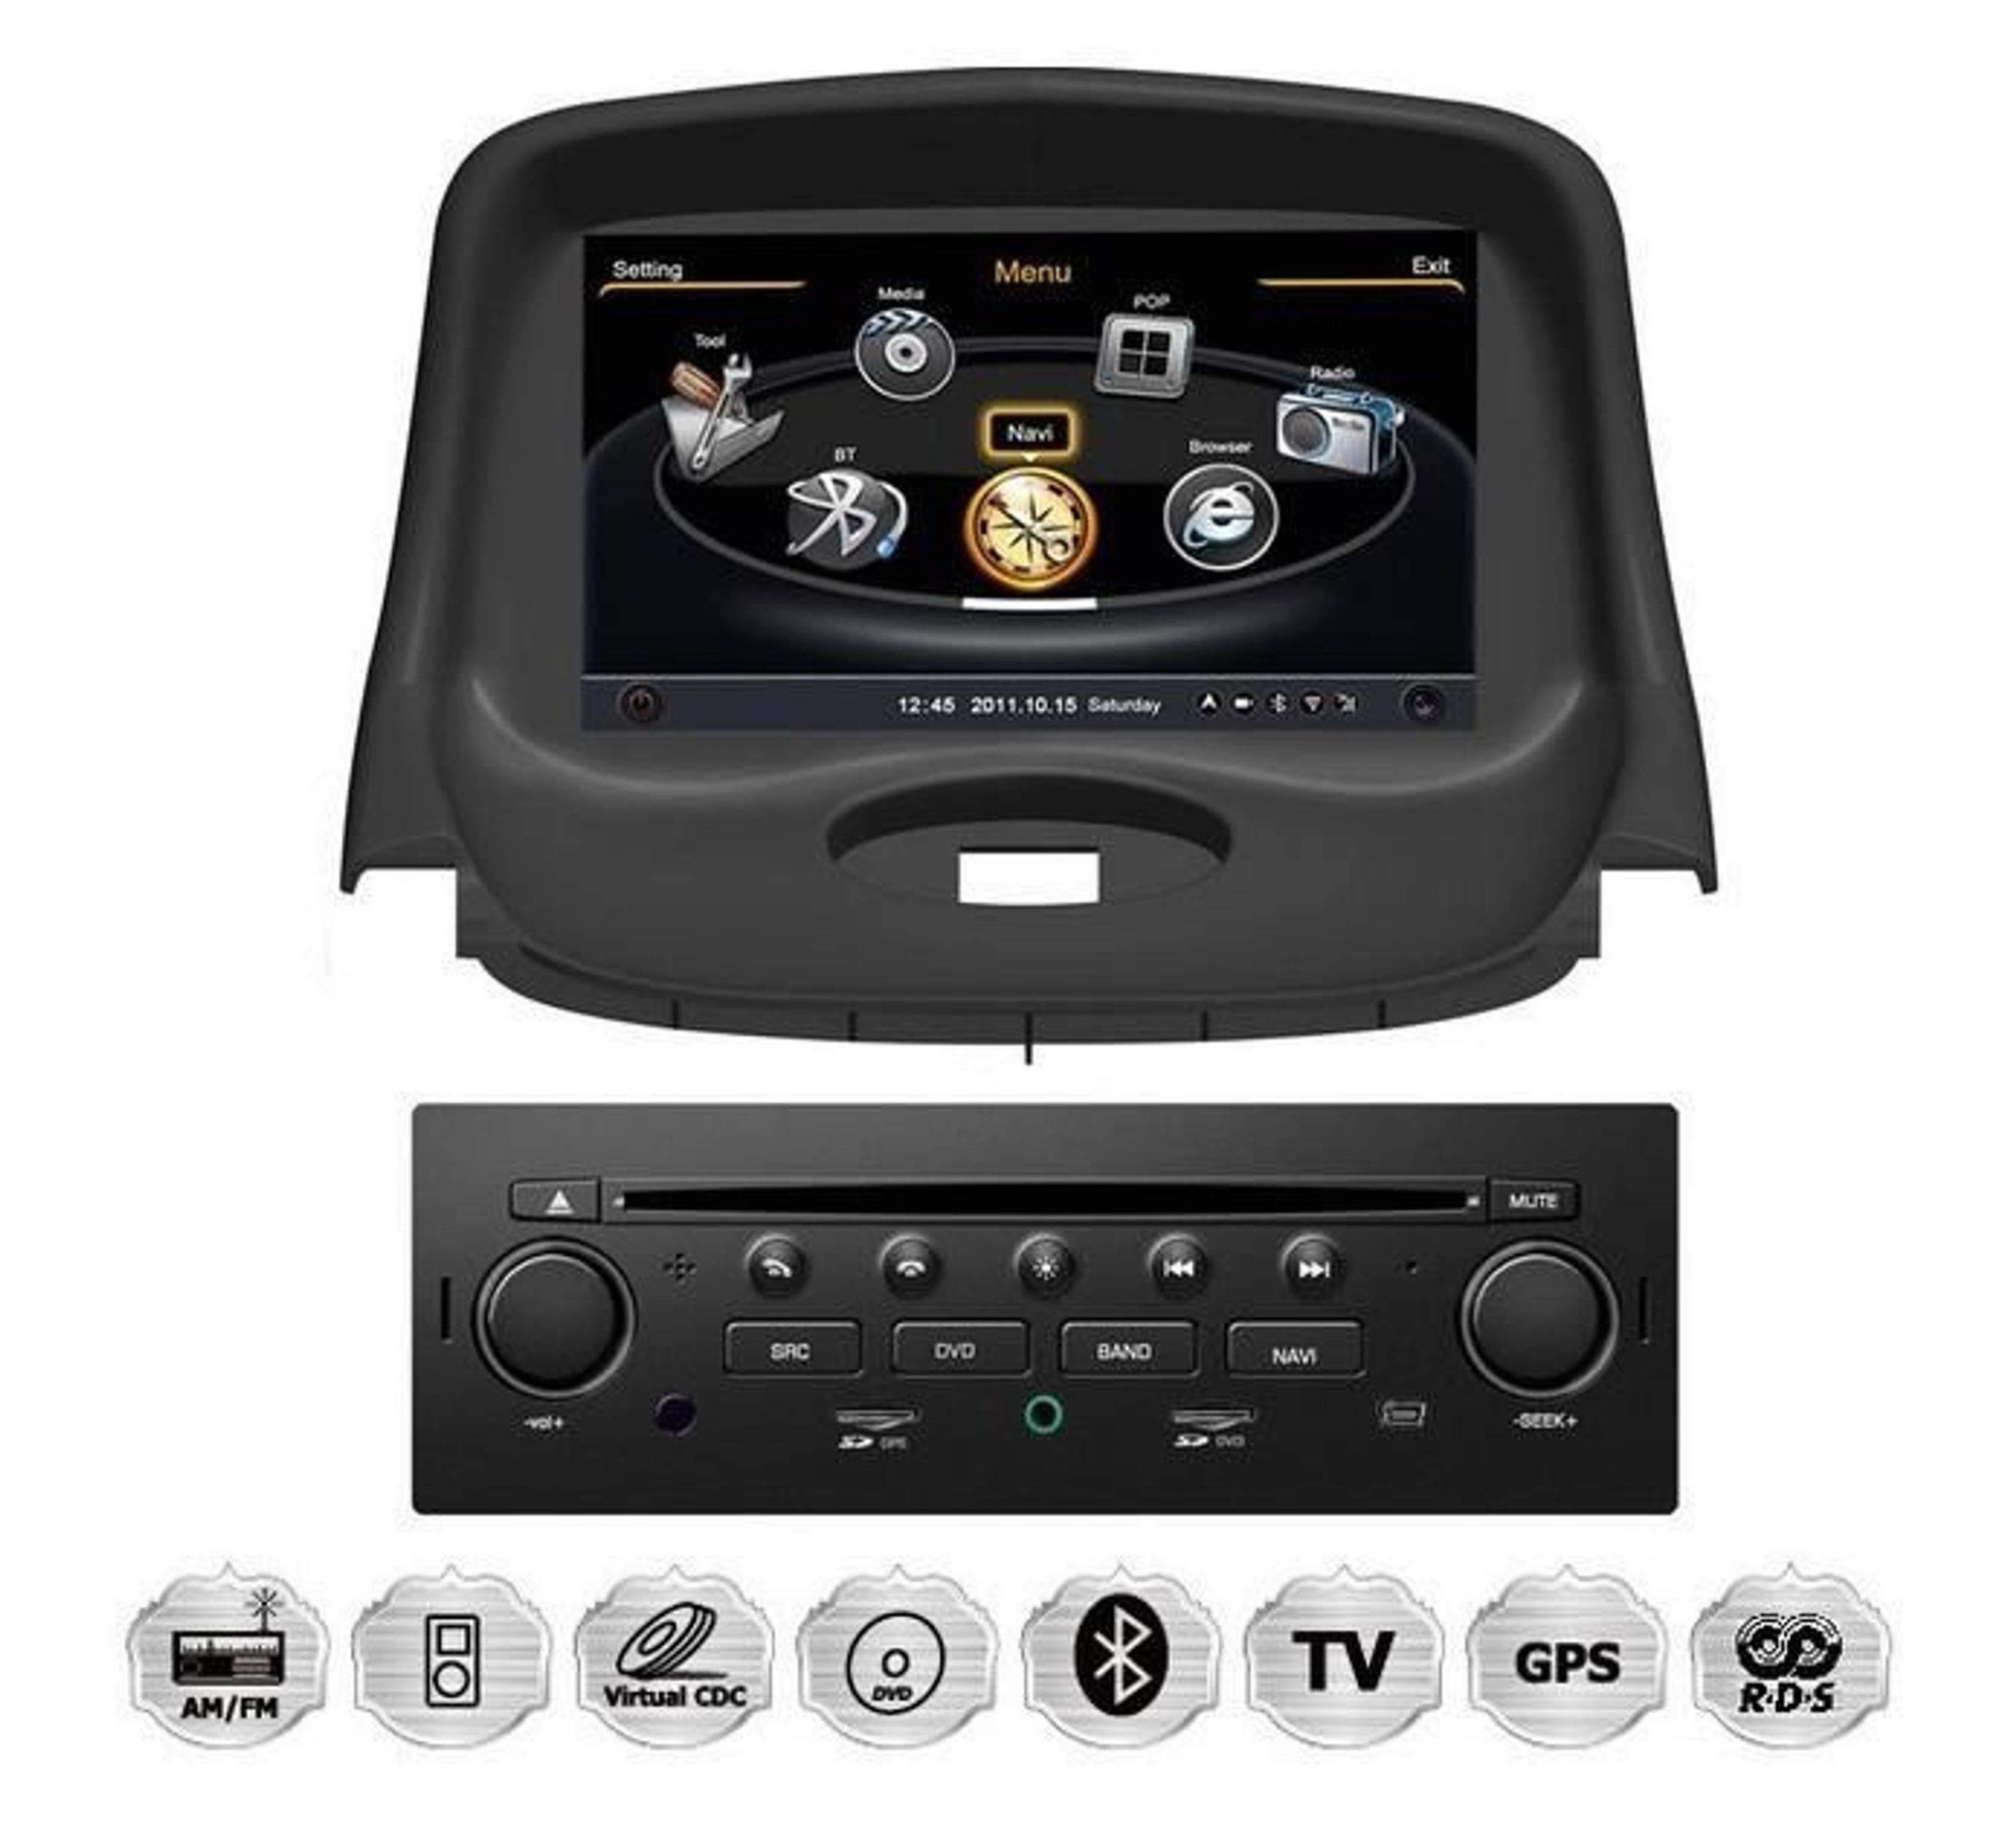 peugeot 206 oem autoradio gps navigationssystem kaufen bei. Black Bedroom Furniture Sets. Home Design Ideas